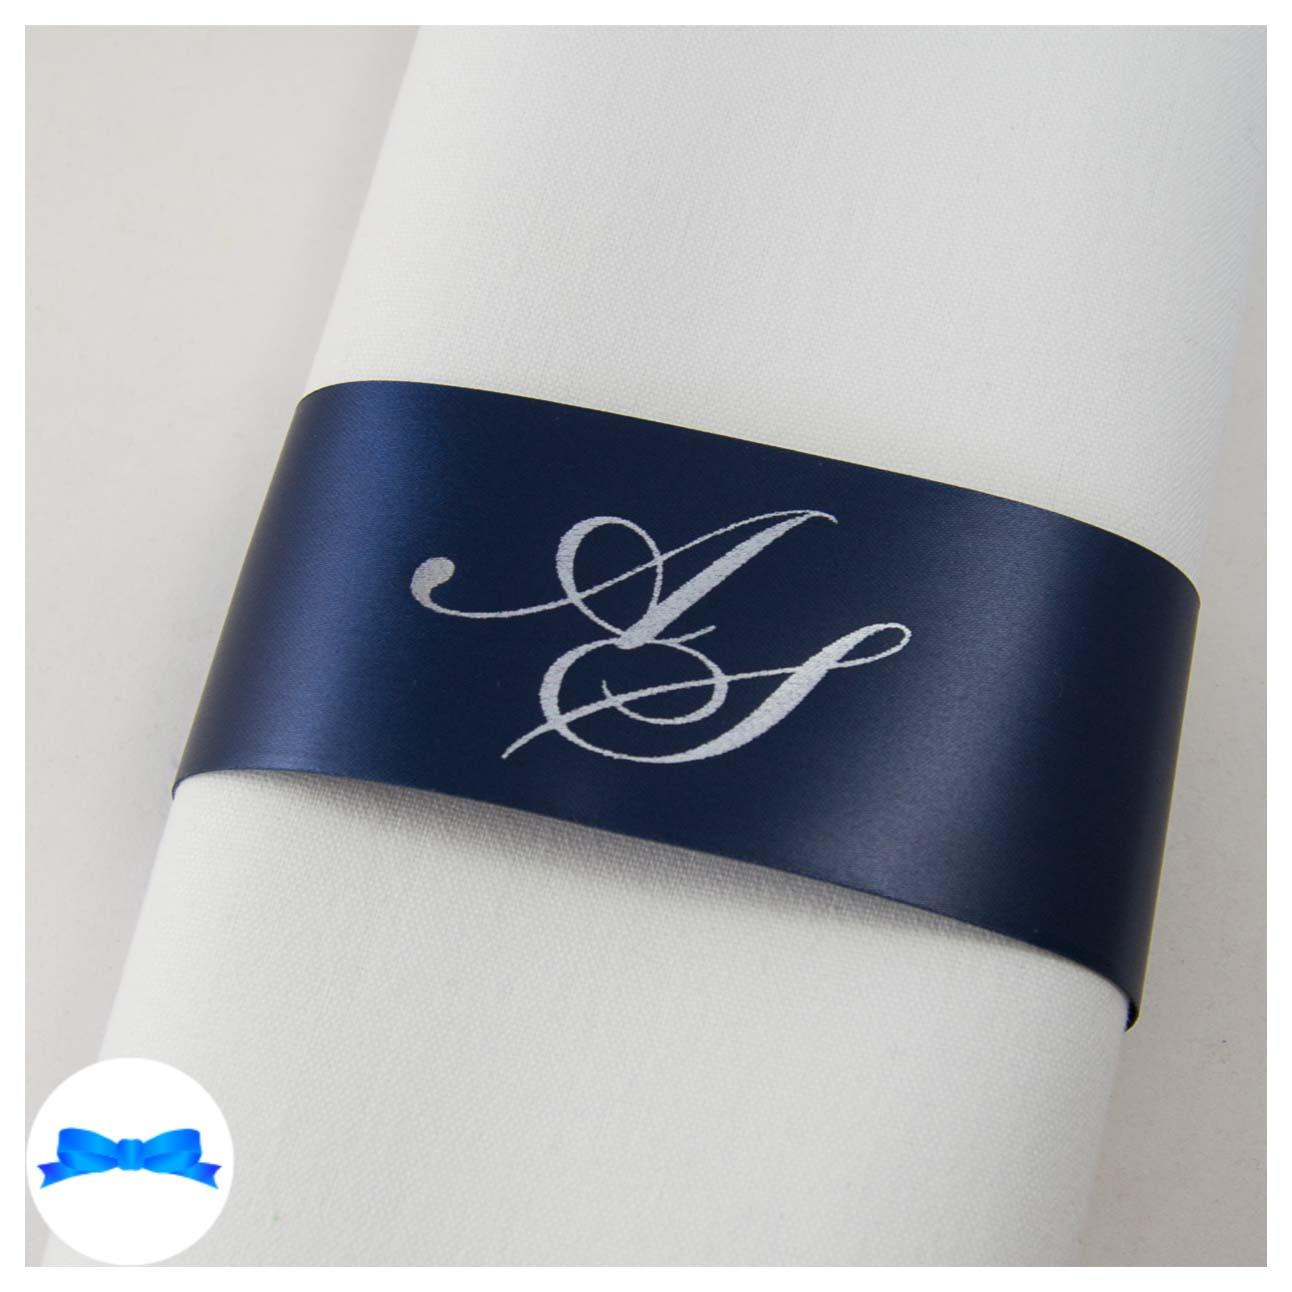 Personalised Navy and Silver Monogrammed Napkin Ring ribbon